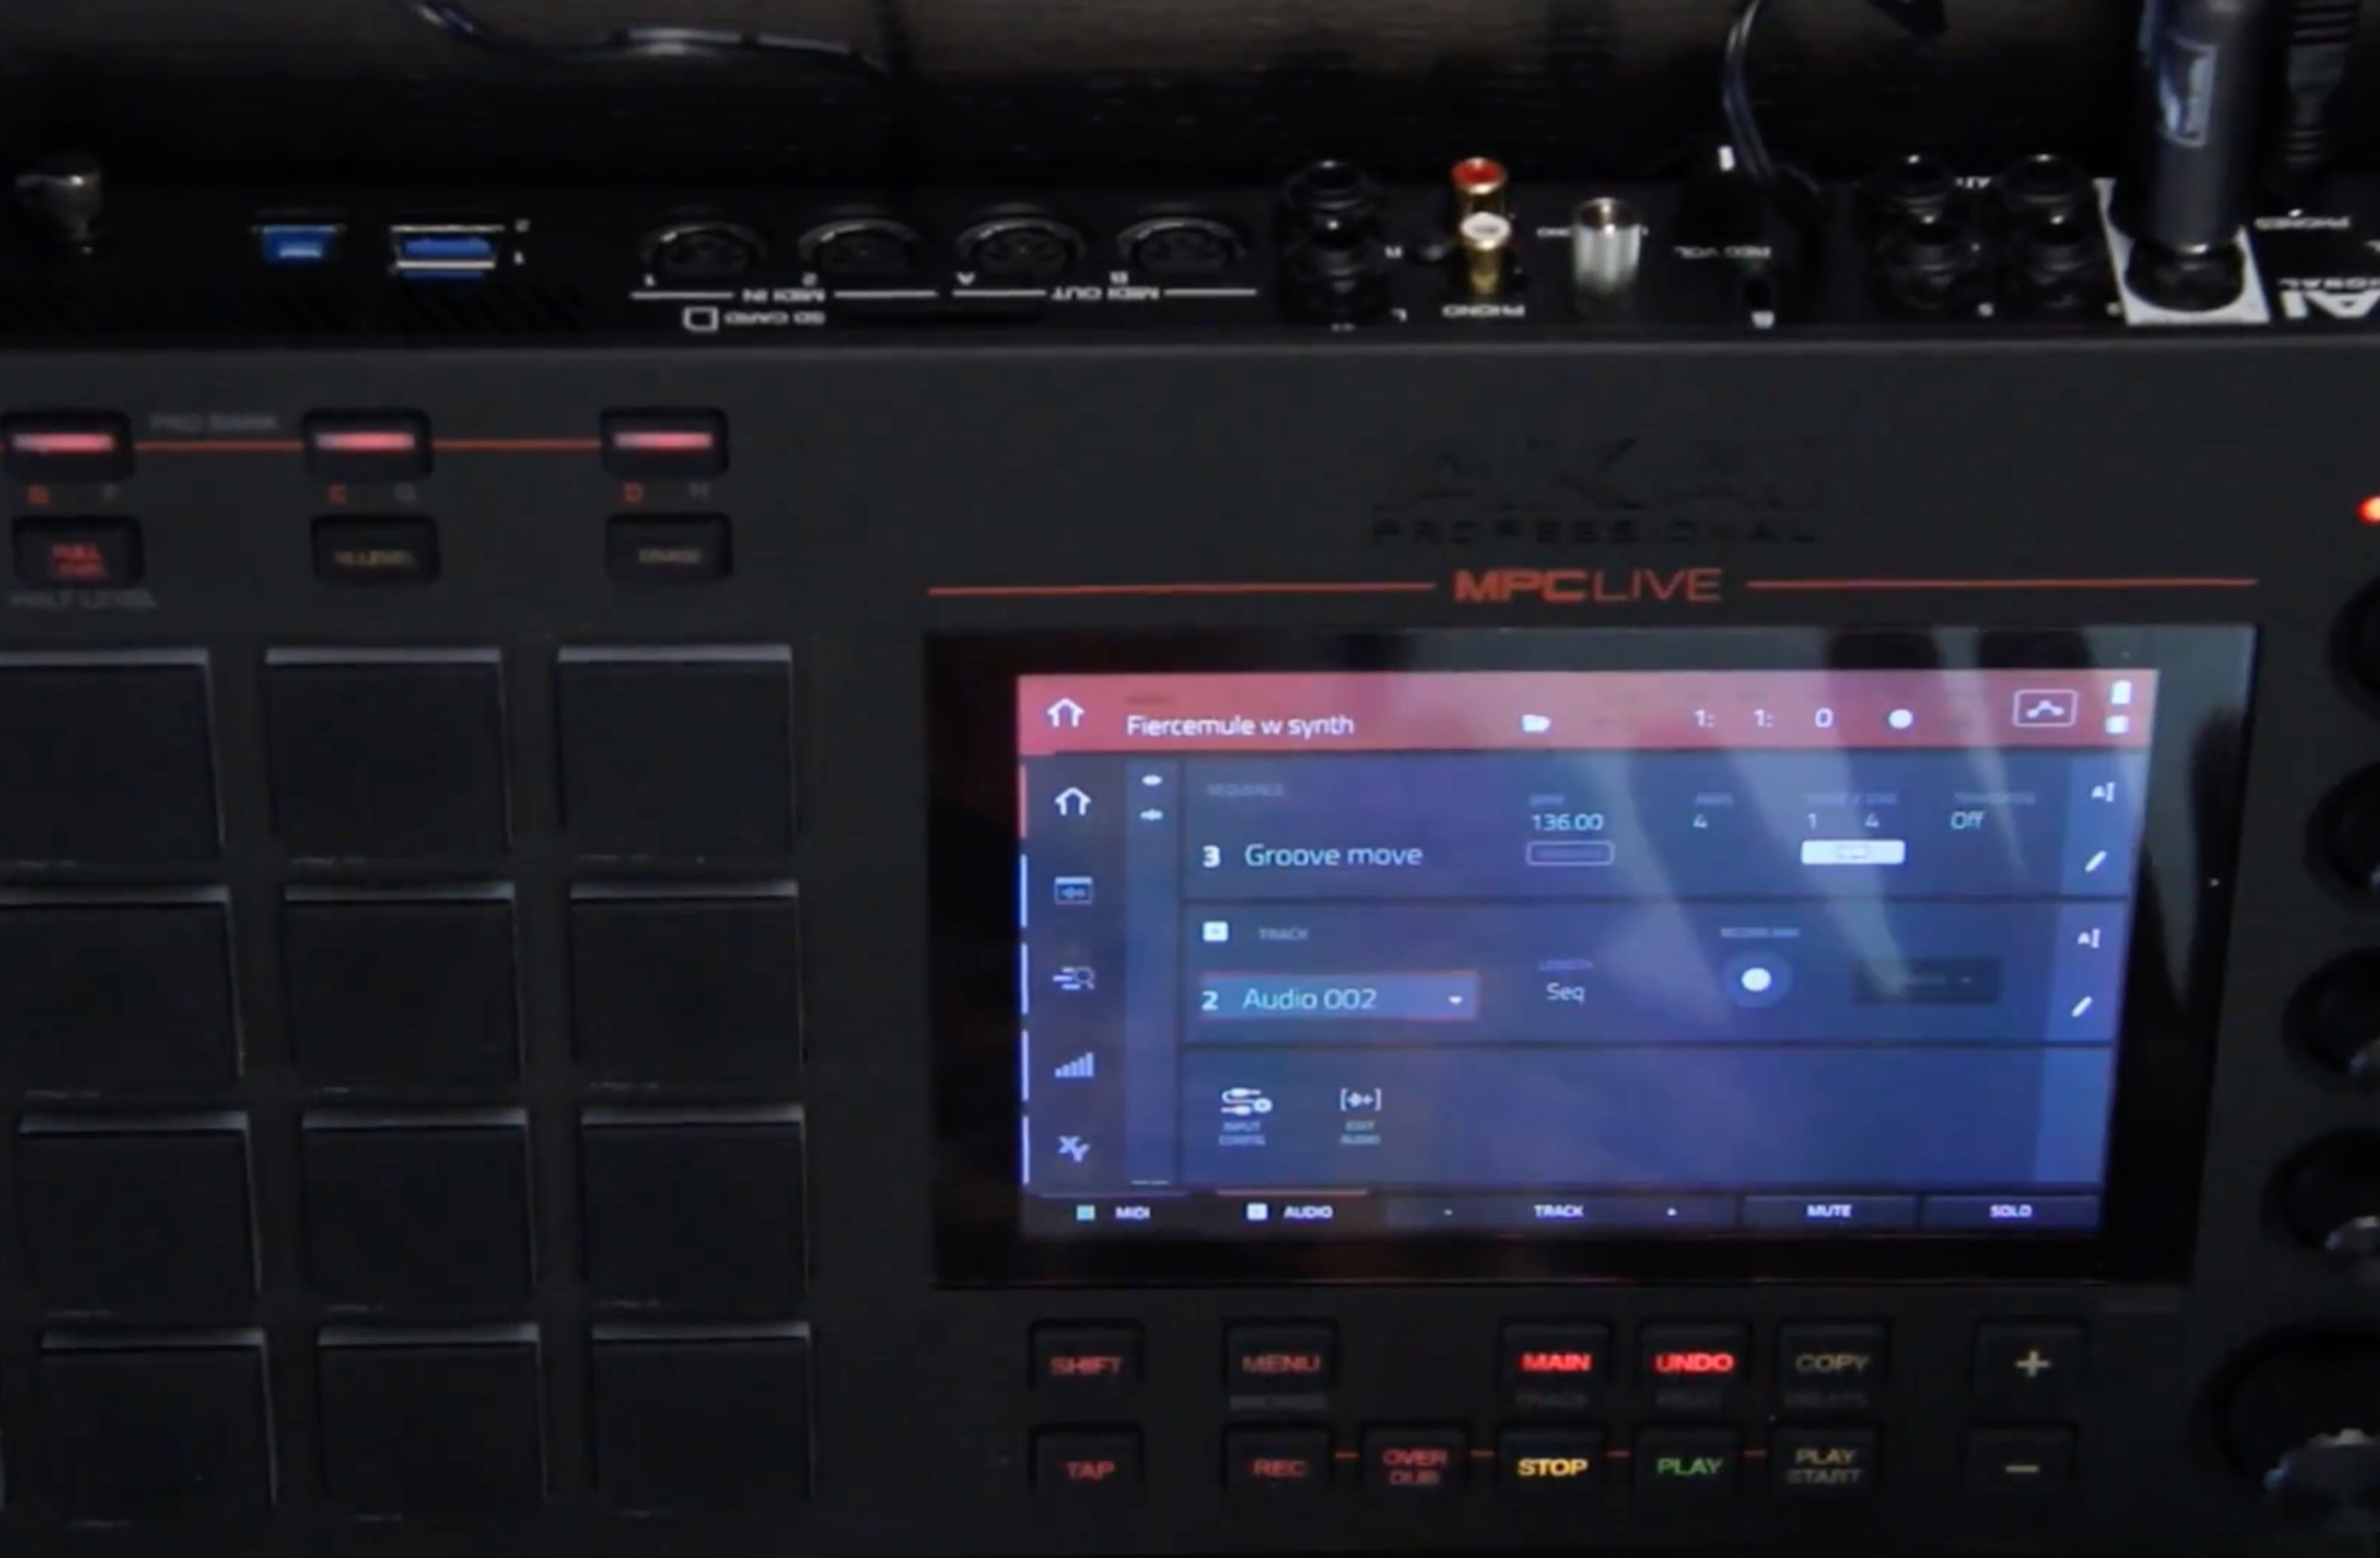 MPC Live – Review and demonstration